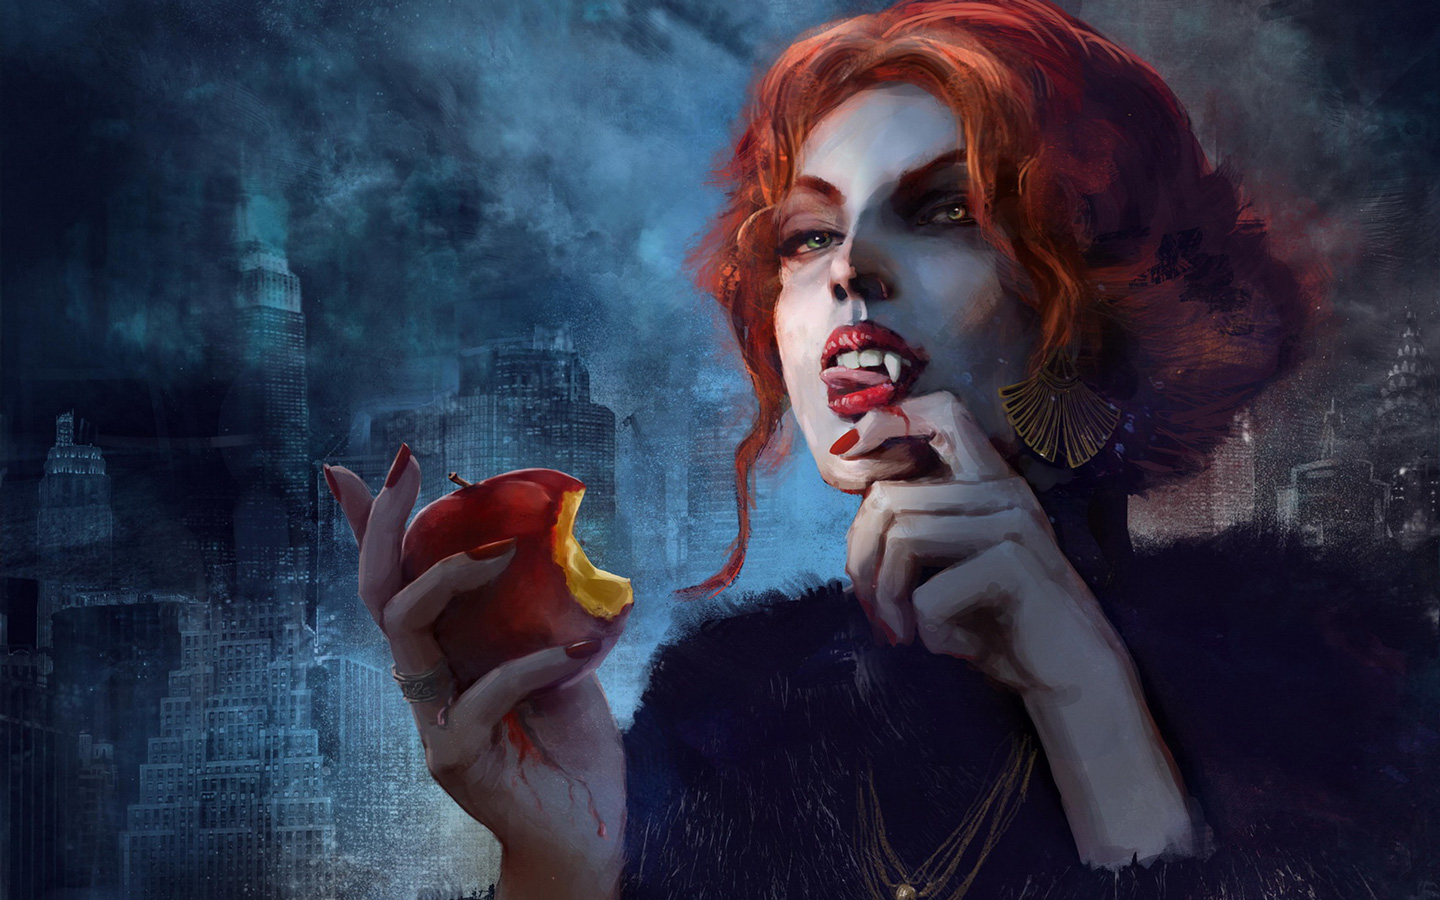 Free Vampire: The Masquerade - Coteries of New York Wallpaper in 1440x900